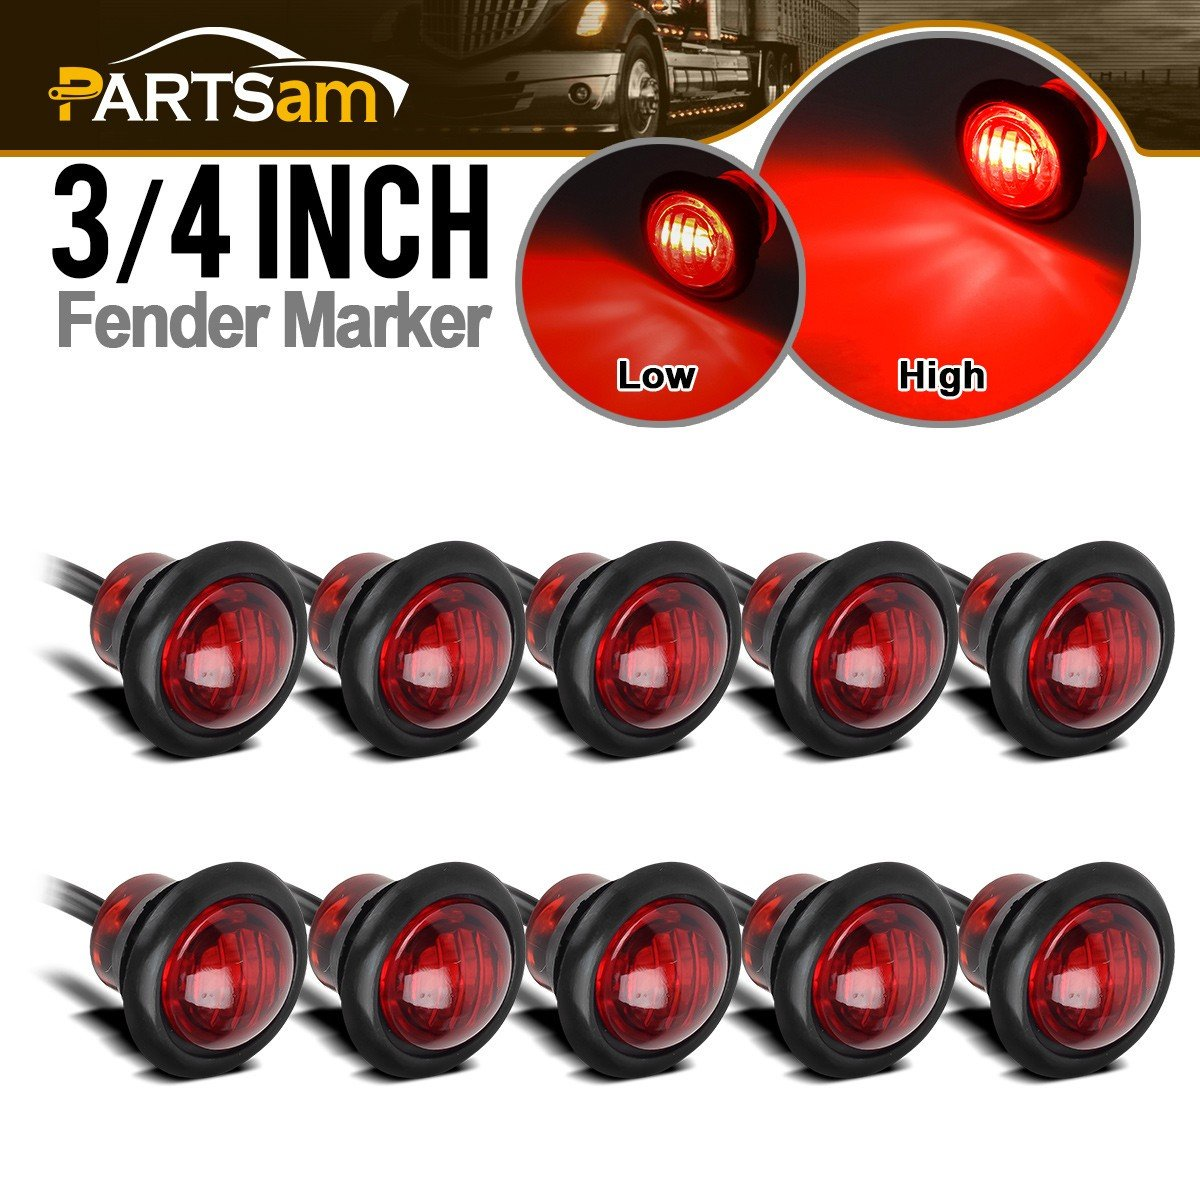 Partsam (10) LED Light AMBER 3/4' Grommet Marker Clearance Trailer 2 function High & Low 3 Wire, 3/4 led dual function marker lights, Amber 3 LED Mini 3/4' Running/Turn Signal Lights with Grommet Amber 3 LED Mini 3/4 Running/Turn Signal Lights with Grommet